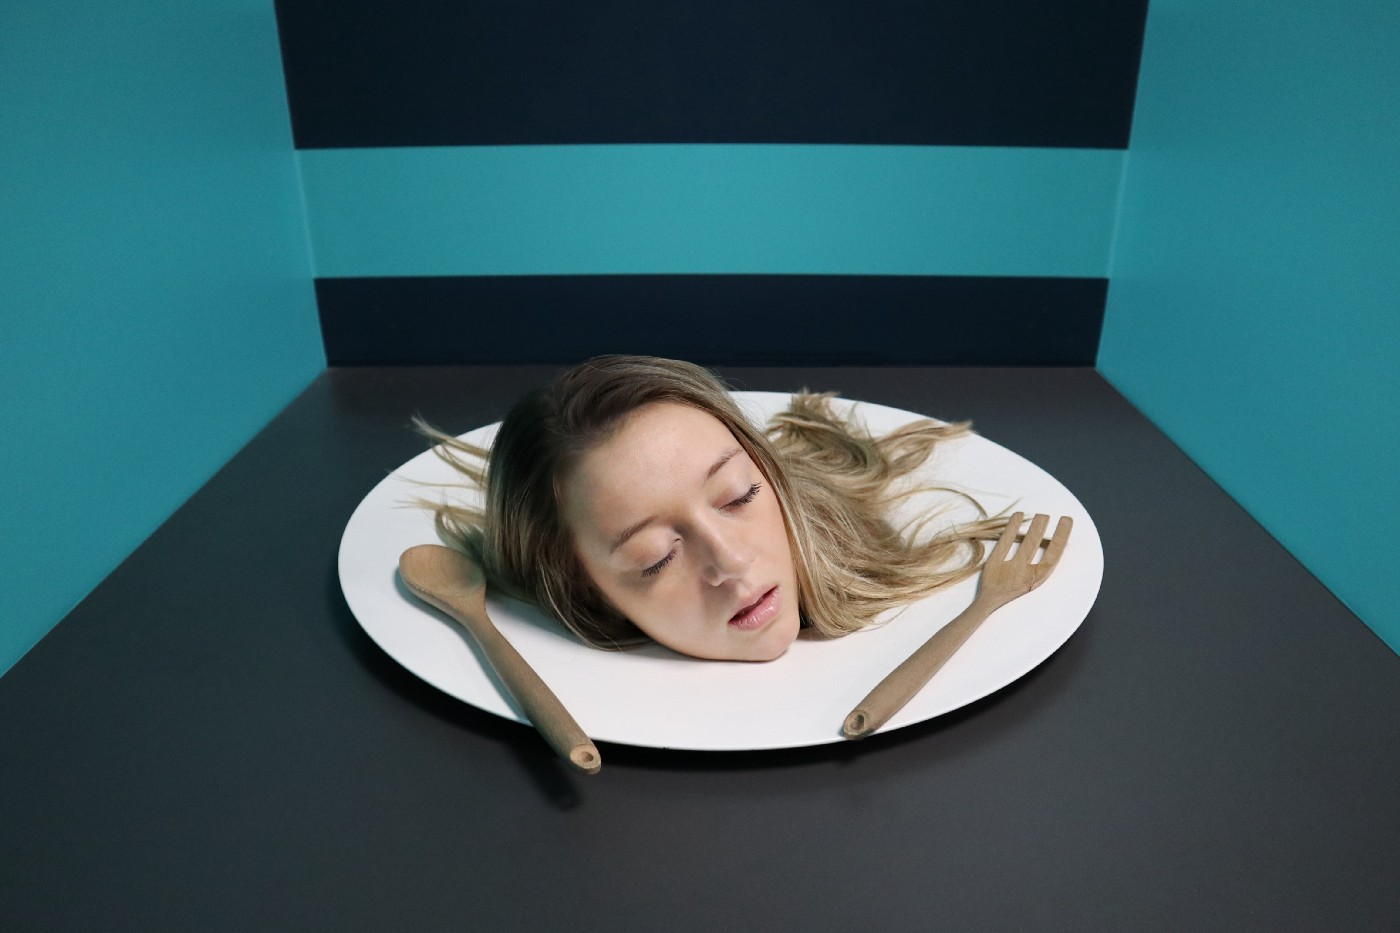 image: woman's head on a white dinner plate between a spoon (left) and fork (right); the background is black and teal.